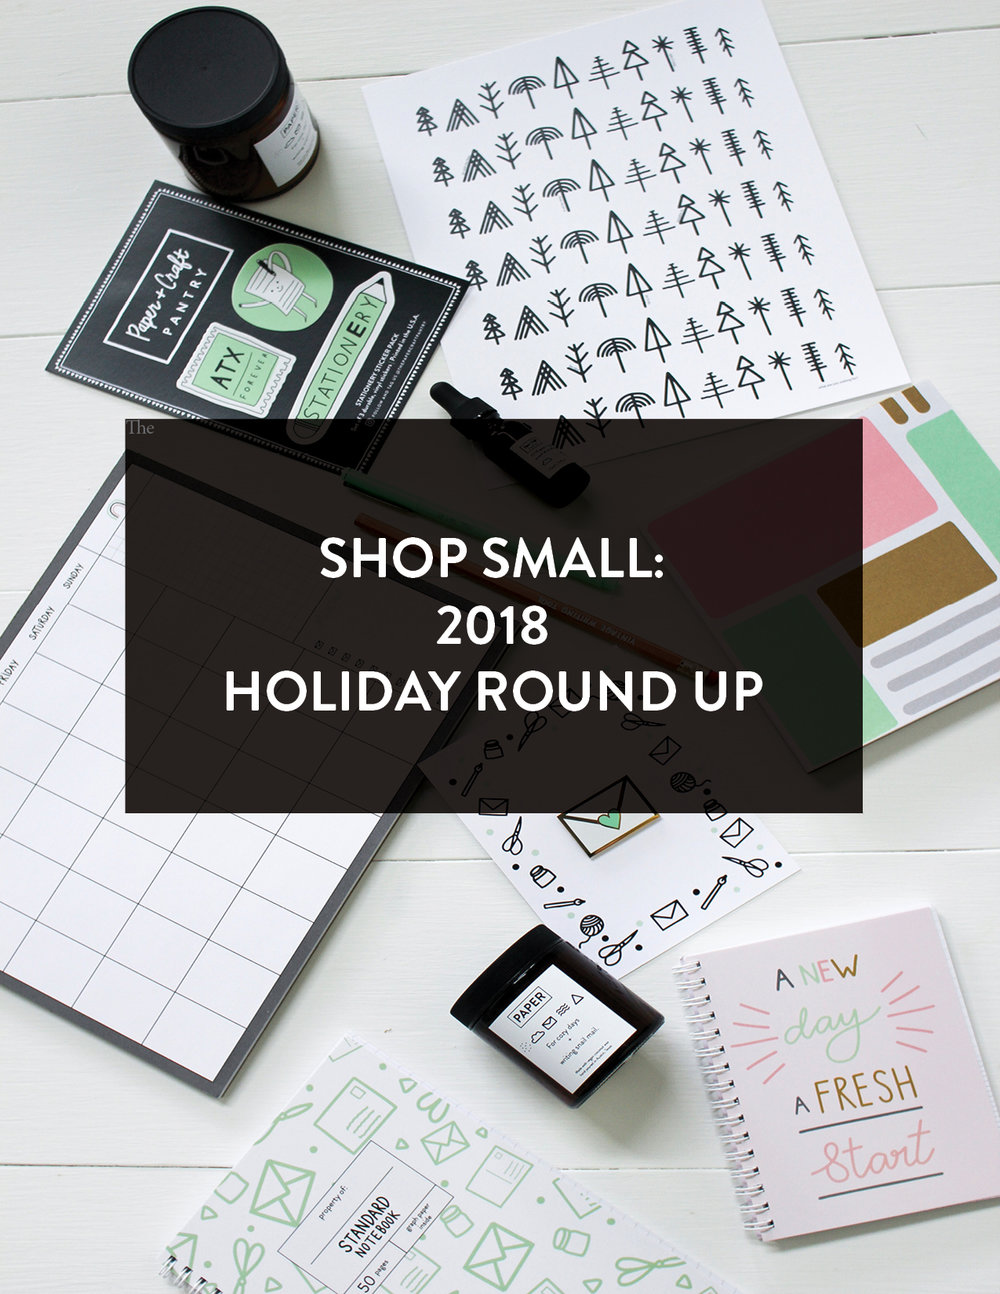 papercraftpantry-blog-shopsmall-2018-holiday-roundup.jpg